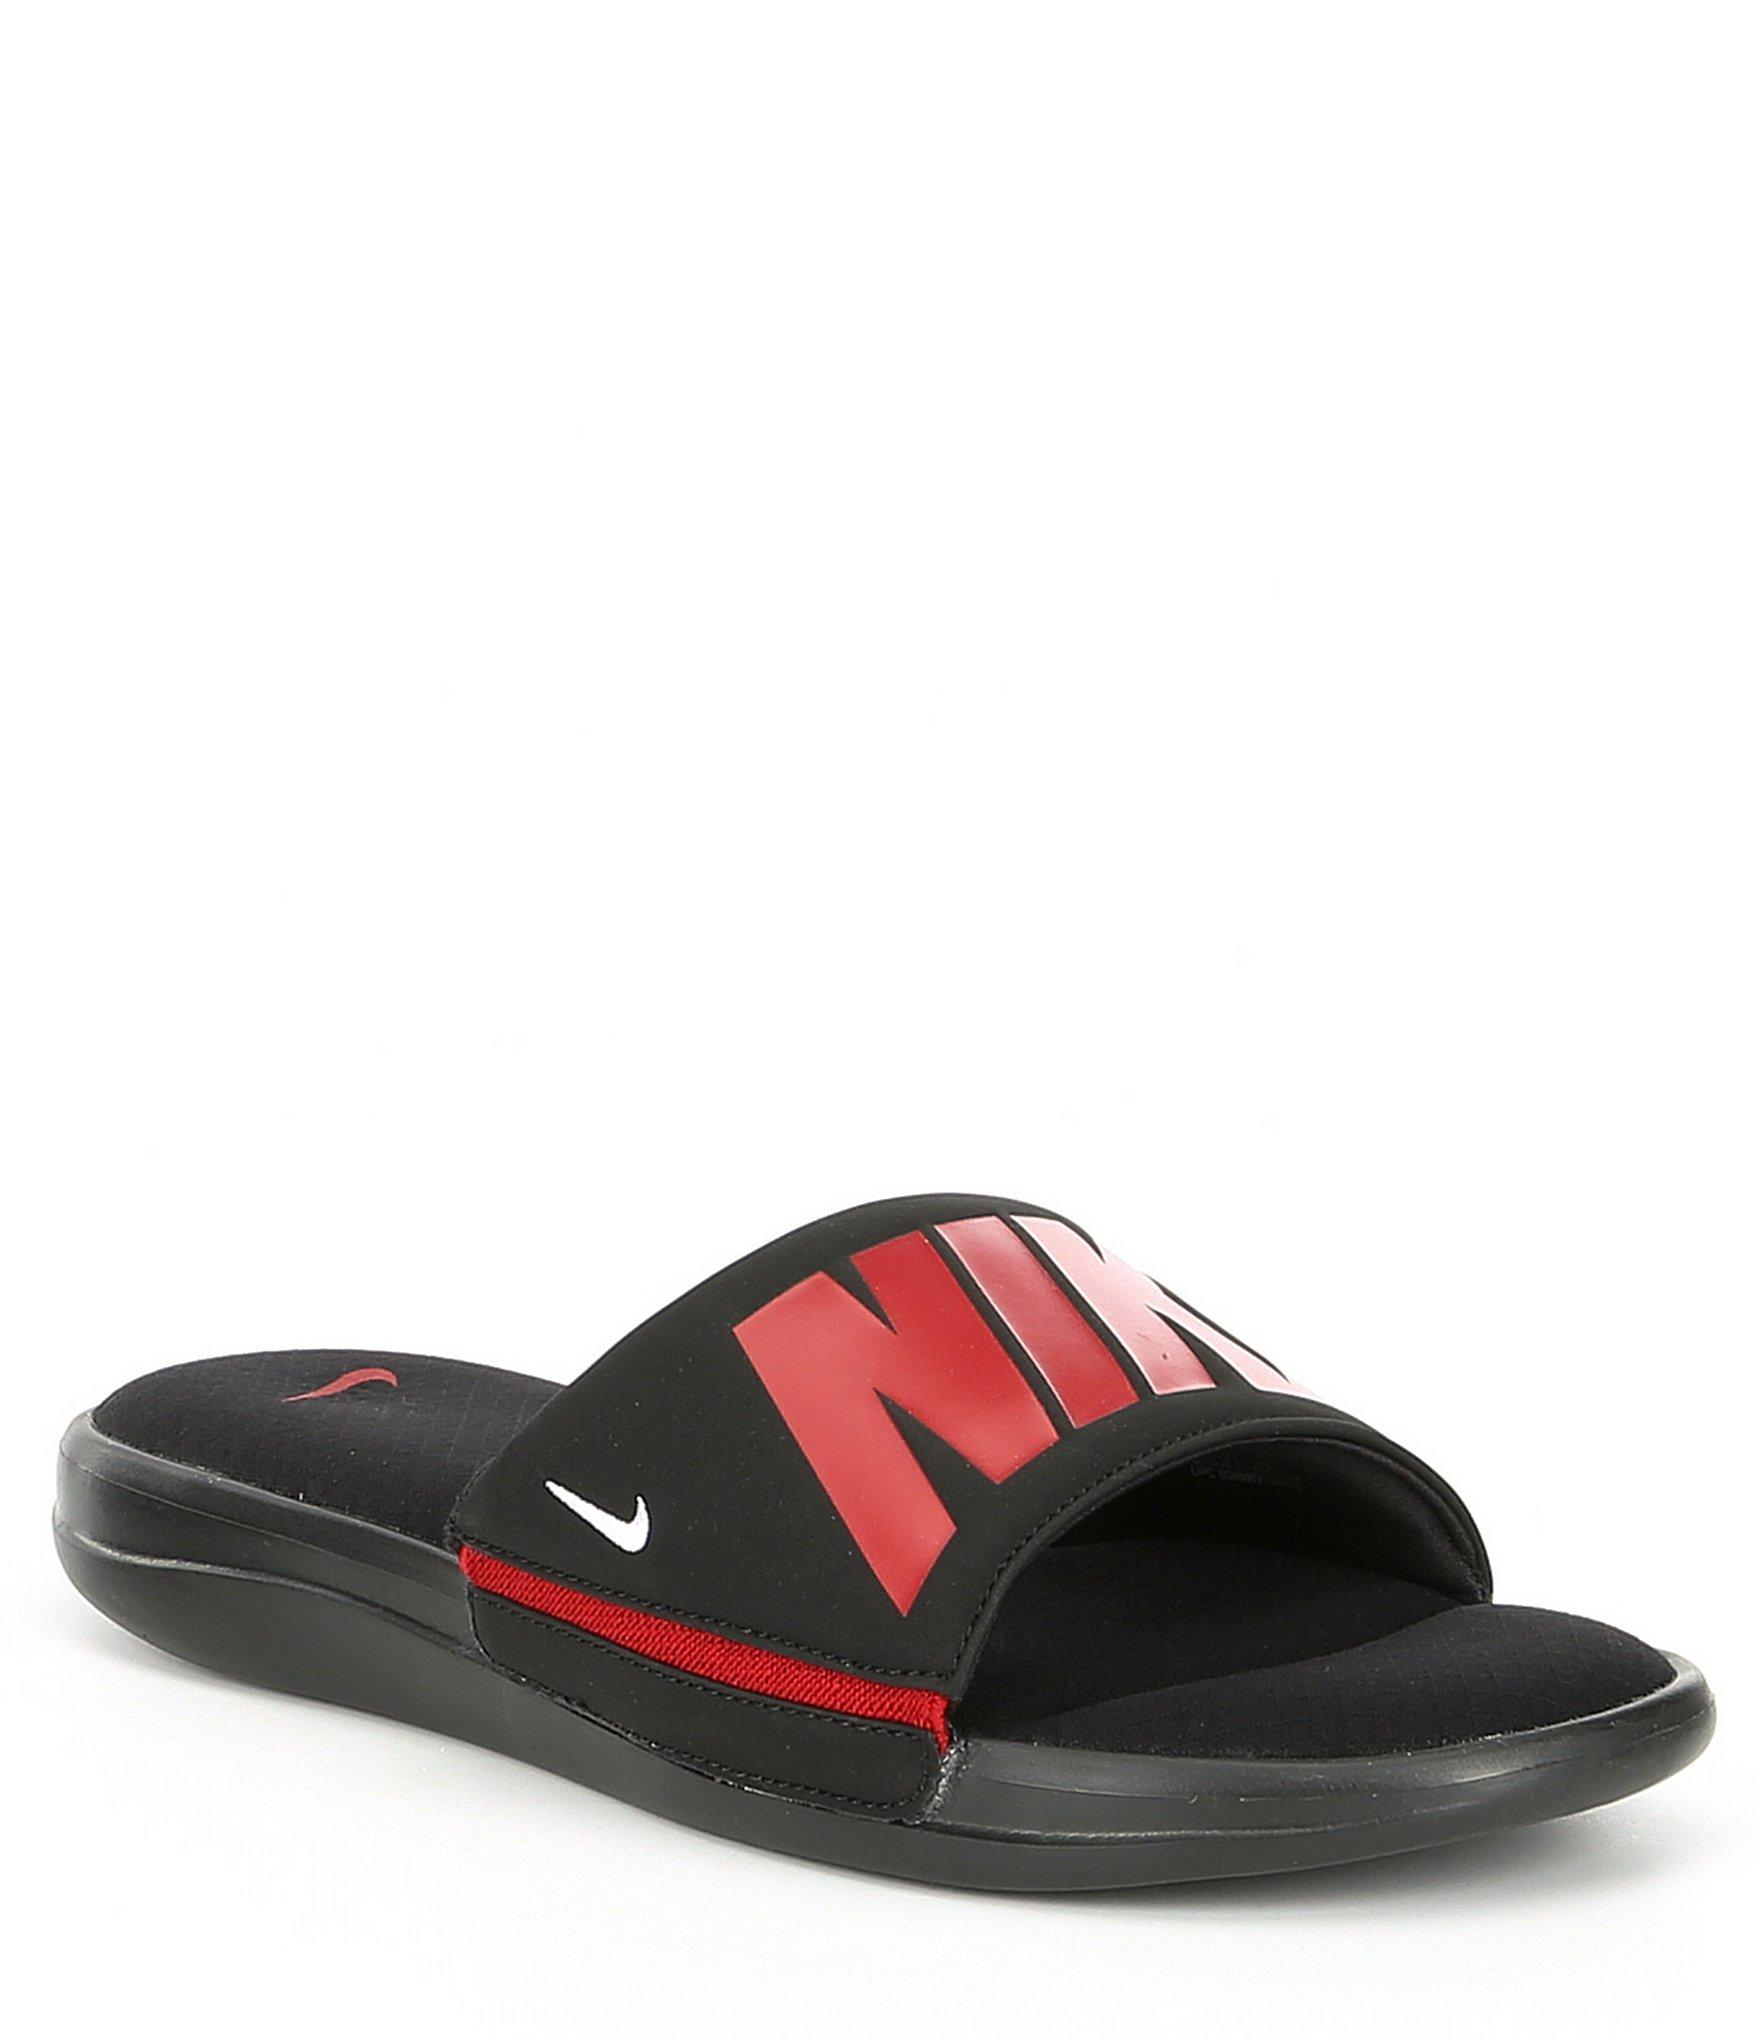 db1272241 Nike Ultra Comfort 3 Slide Sandal in Black for Men - Lyst